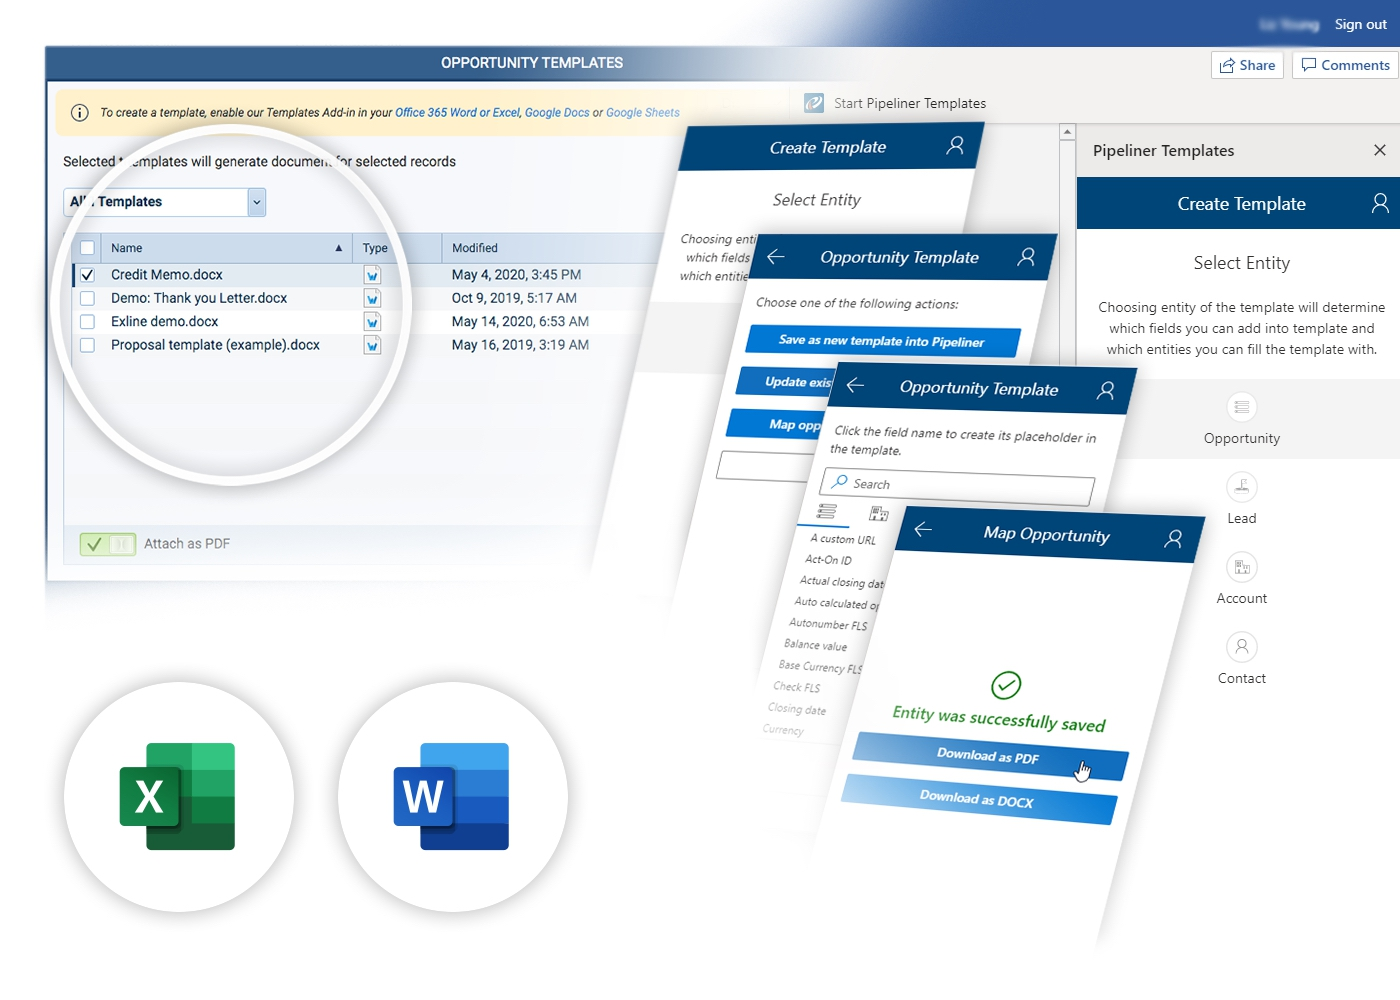 Microsoft 365 Templates › Word & Excel with Pipeliner CRM